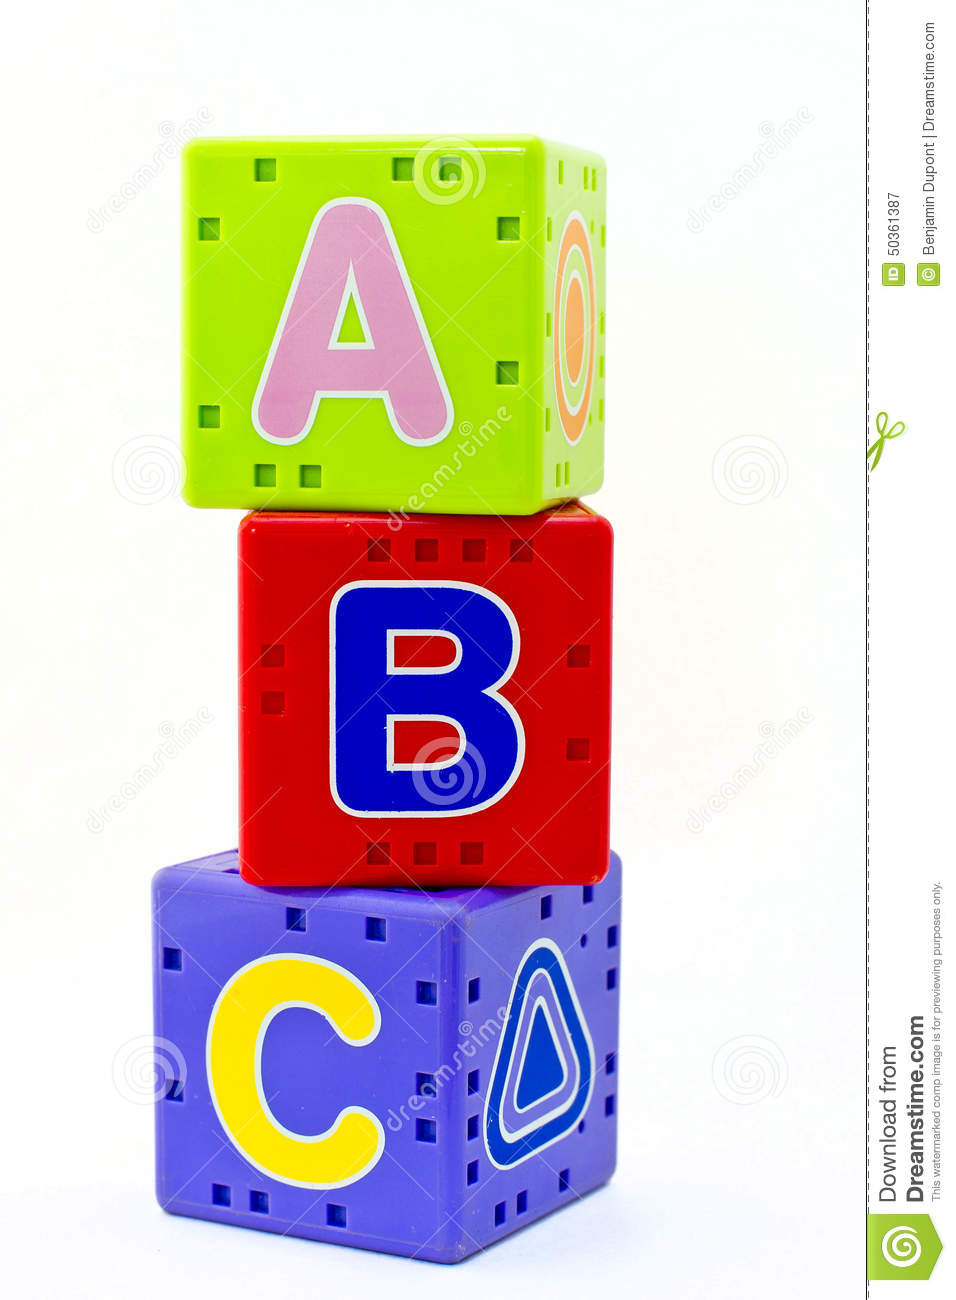 L At Abc Microsoft Com: L'alphabet ABC Cube Les Jouets éducatifs Photo Stock